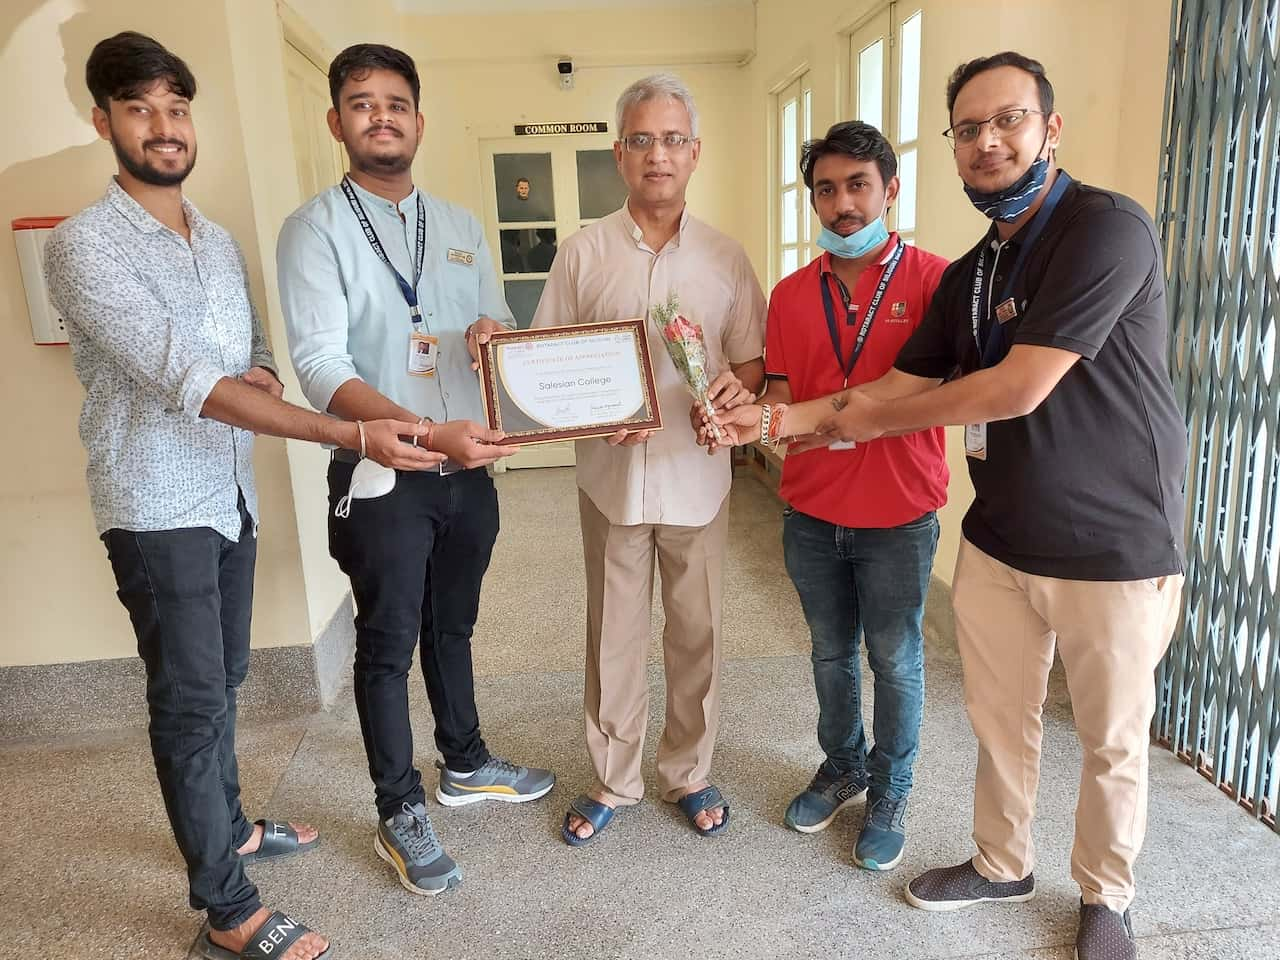 Salesian College Principal Father George Thadathil receives the honor certificate from Rotaract Club of Siliguri in appreciation of the college's outstanding commitment and valued contribution towards the nation.